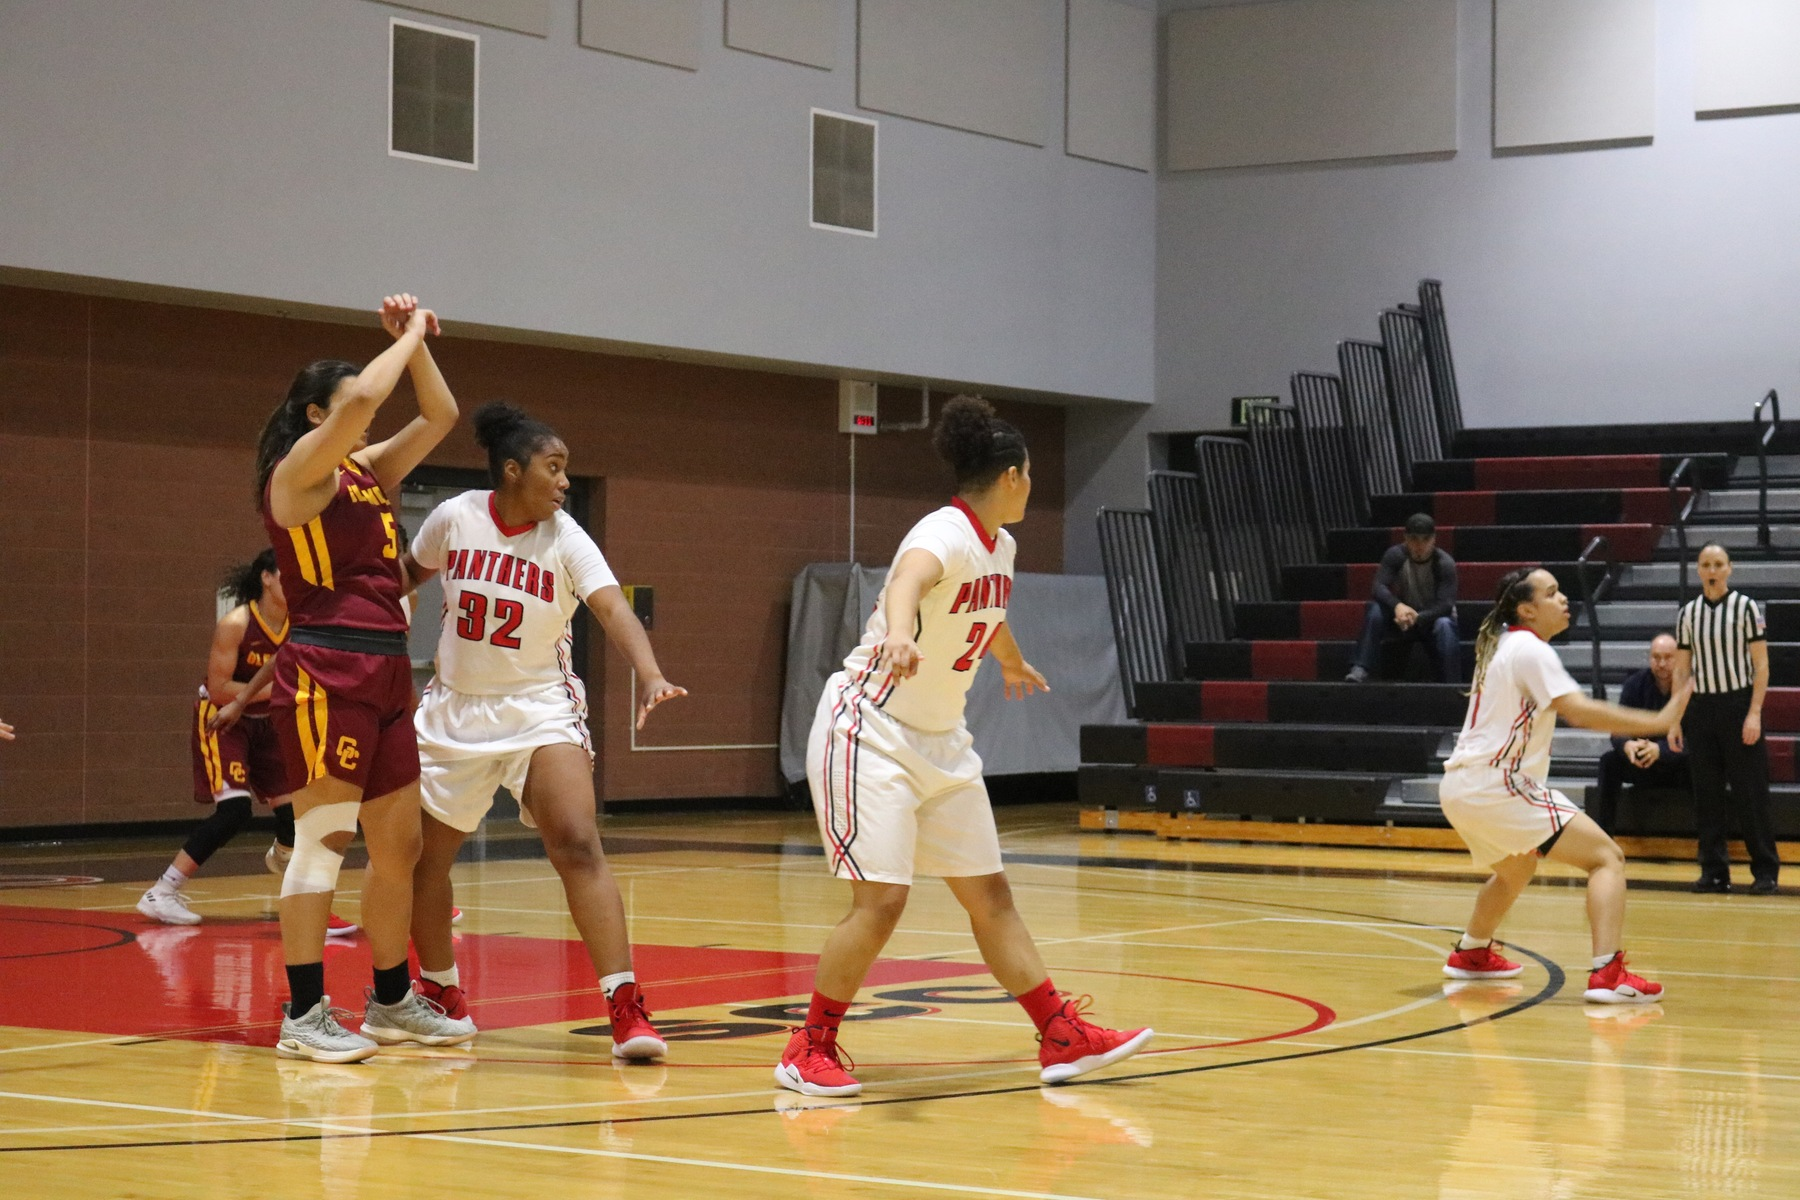 WOMEN'S BASKETBALL GAME VS GLENDALE